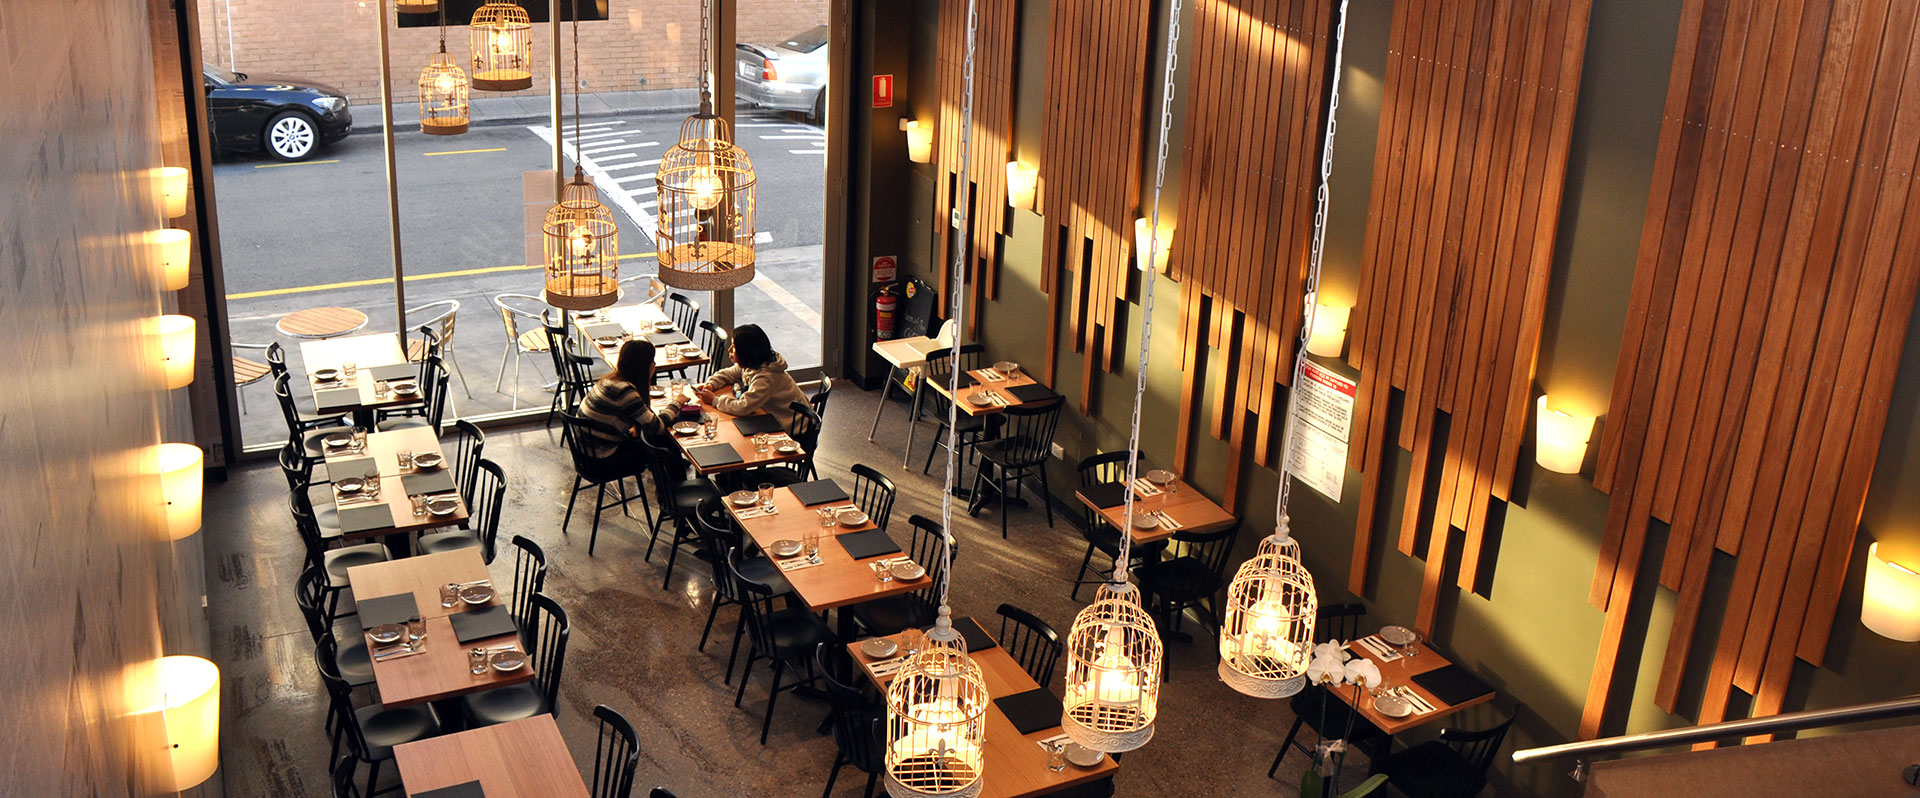 Restaurant Interior Fitout in Field St Adelaide